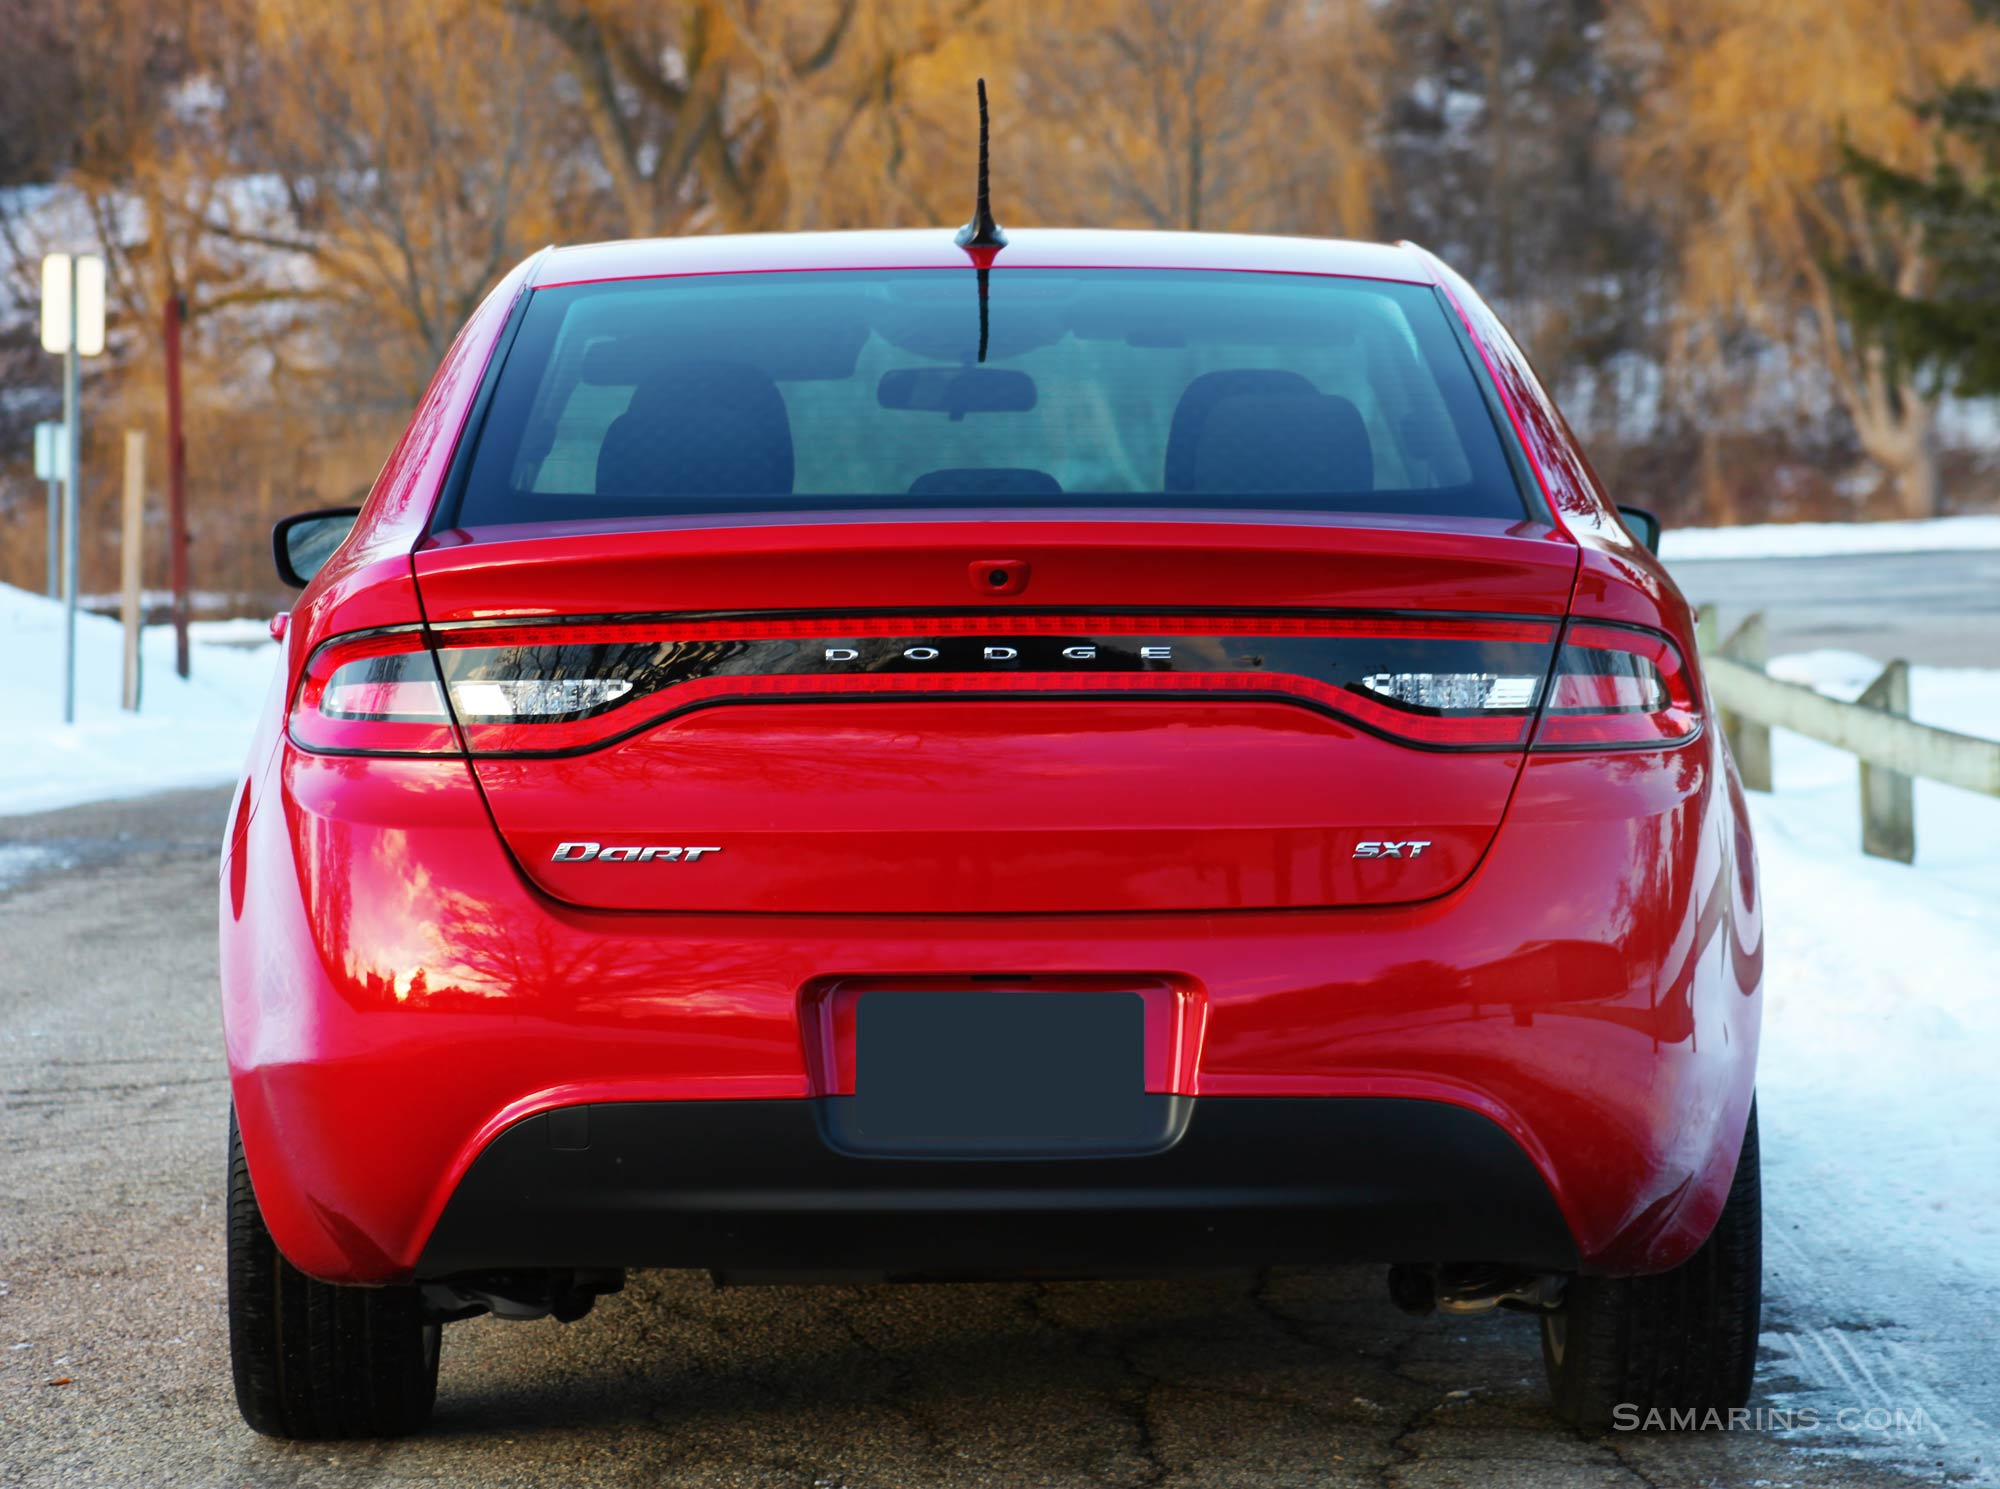 Dodge Dart Turbo >> Dodge Dart 2013-2016 common problems, fuel economy, driving experience, photos